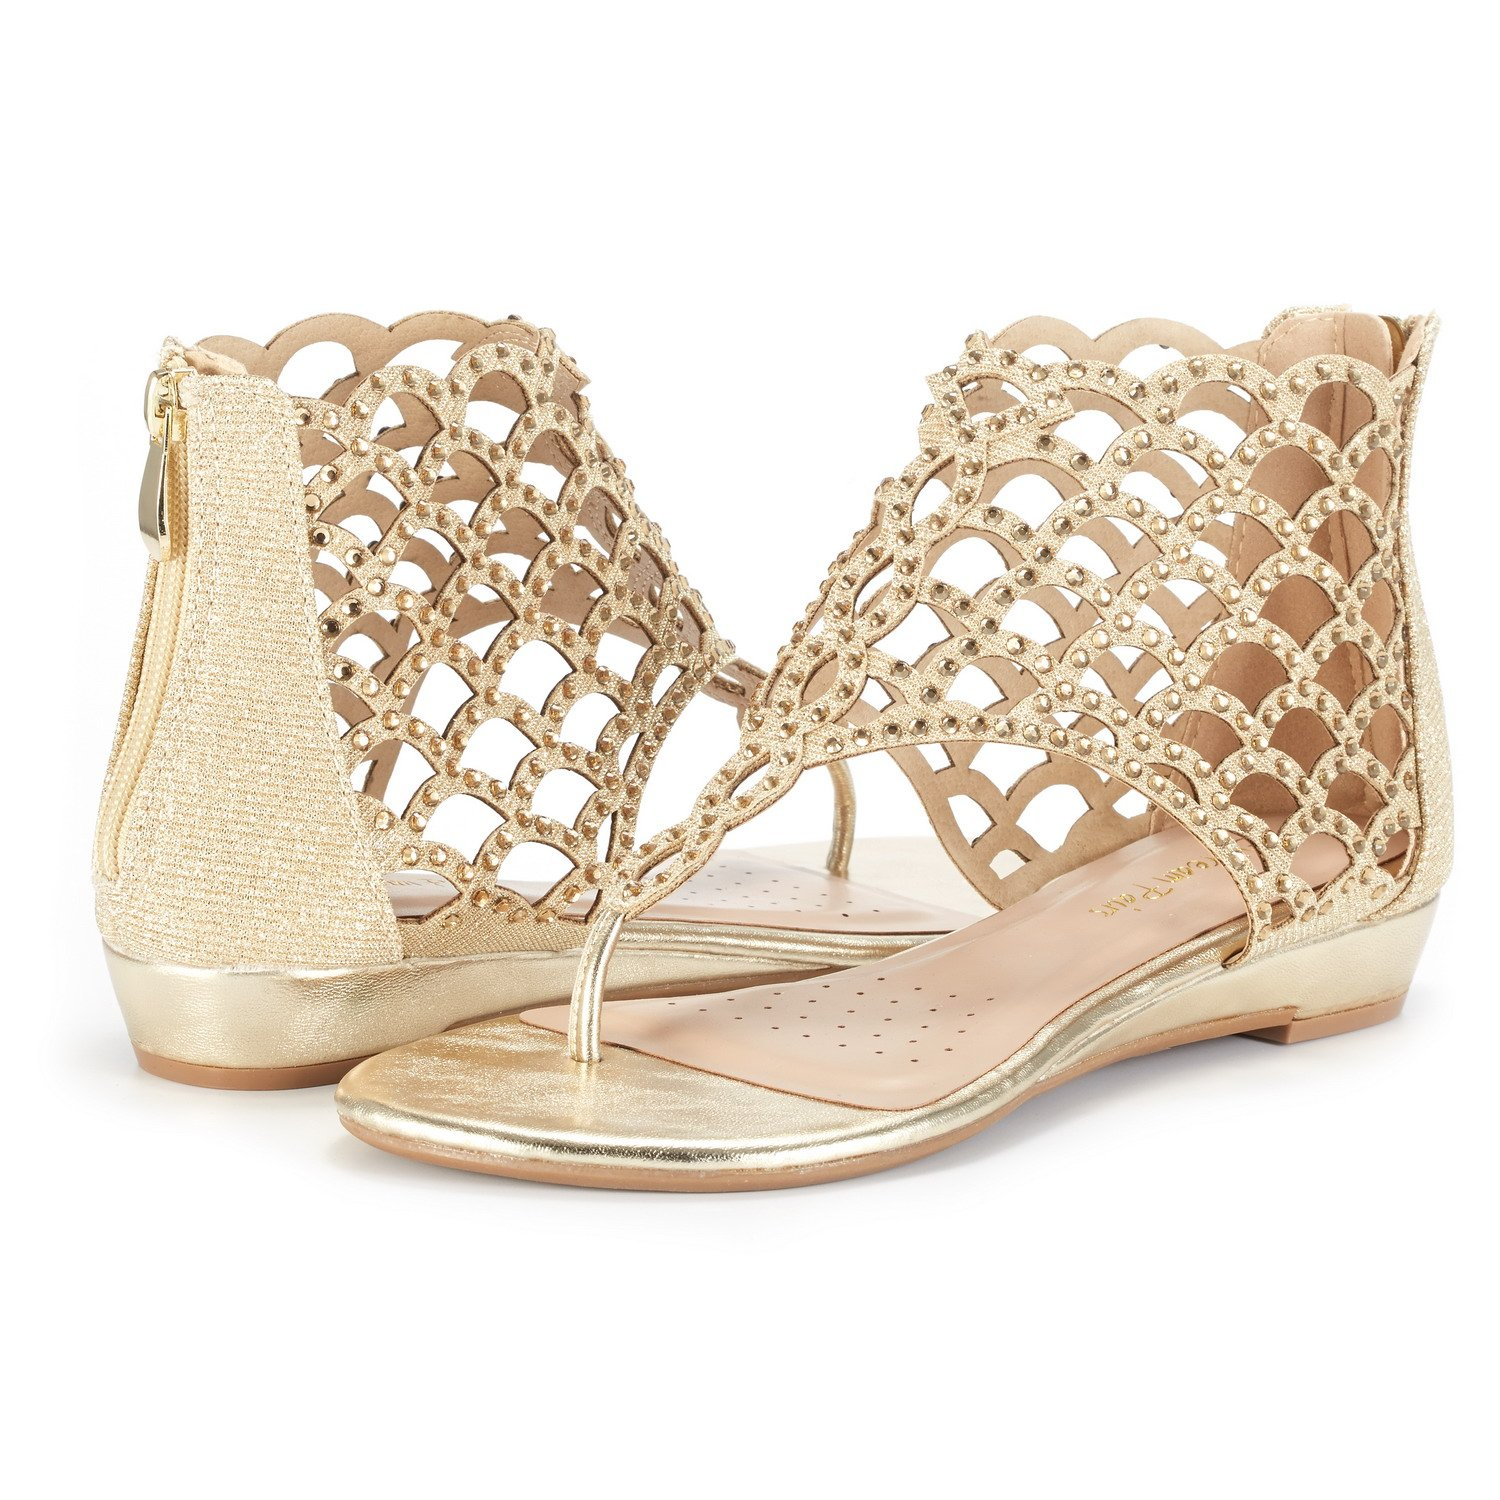 Women's Rhinestone Jewel Fish Scale Pattern Gold Ankle-High Flat Sandals - DeluxeAdultCostumes.com